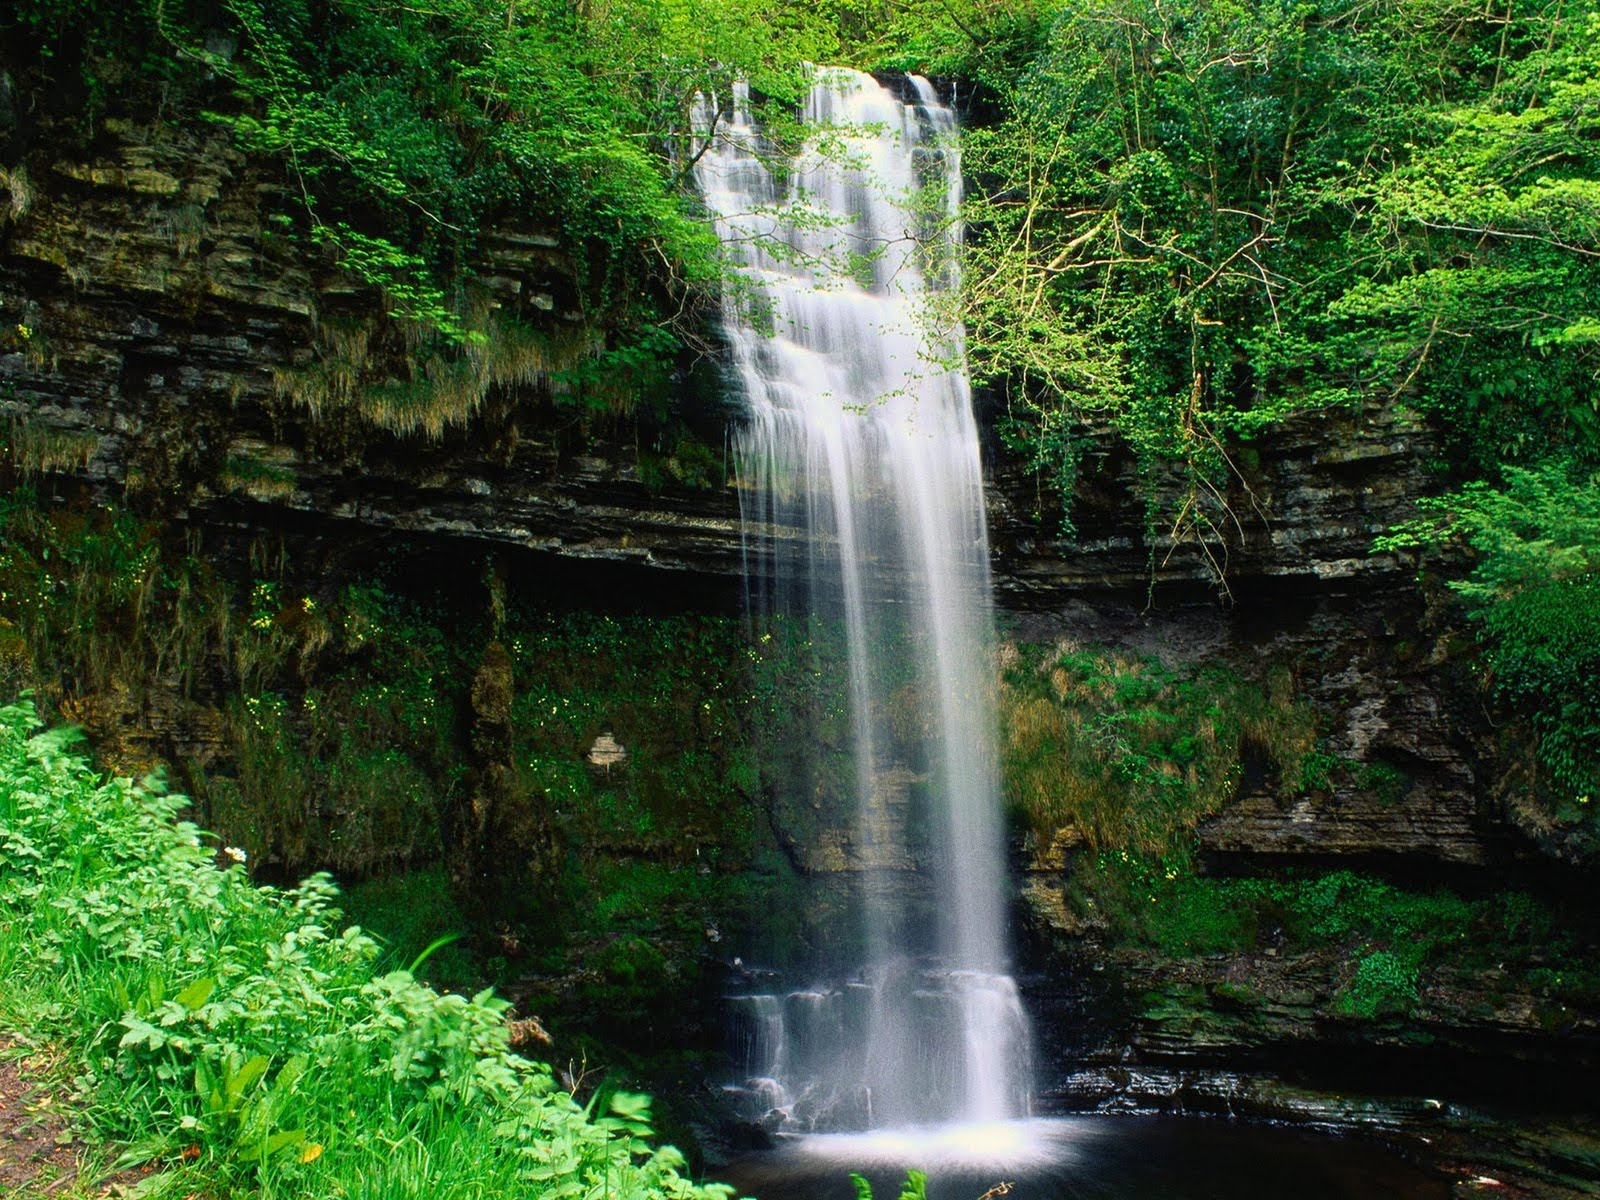 Waterfall Wallpapers are given above All the 9 wallpapers show 1600x1200